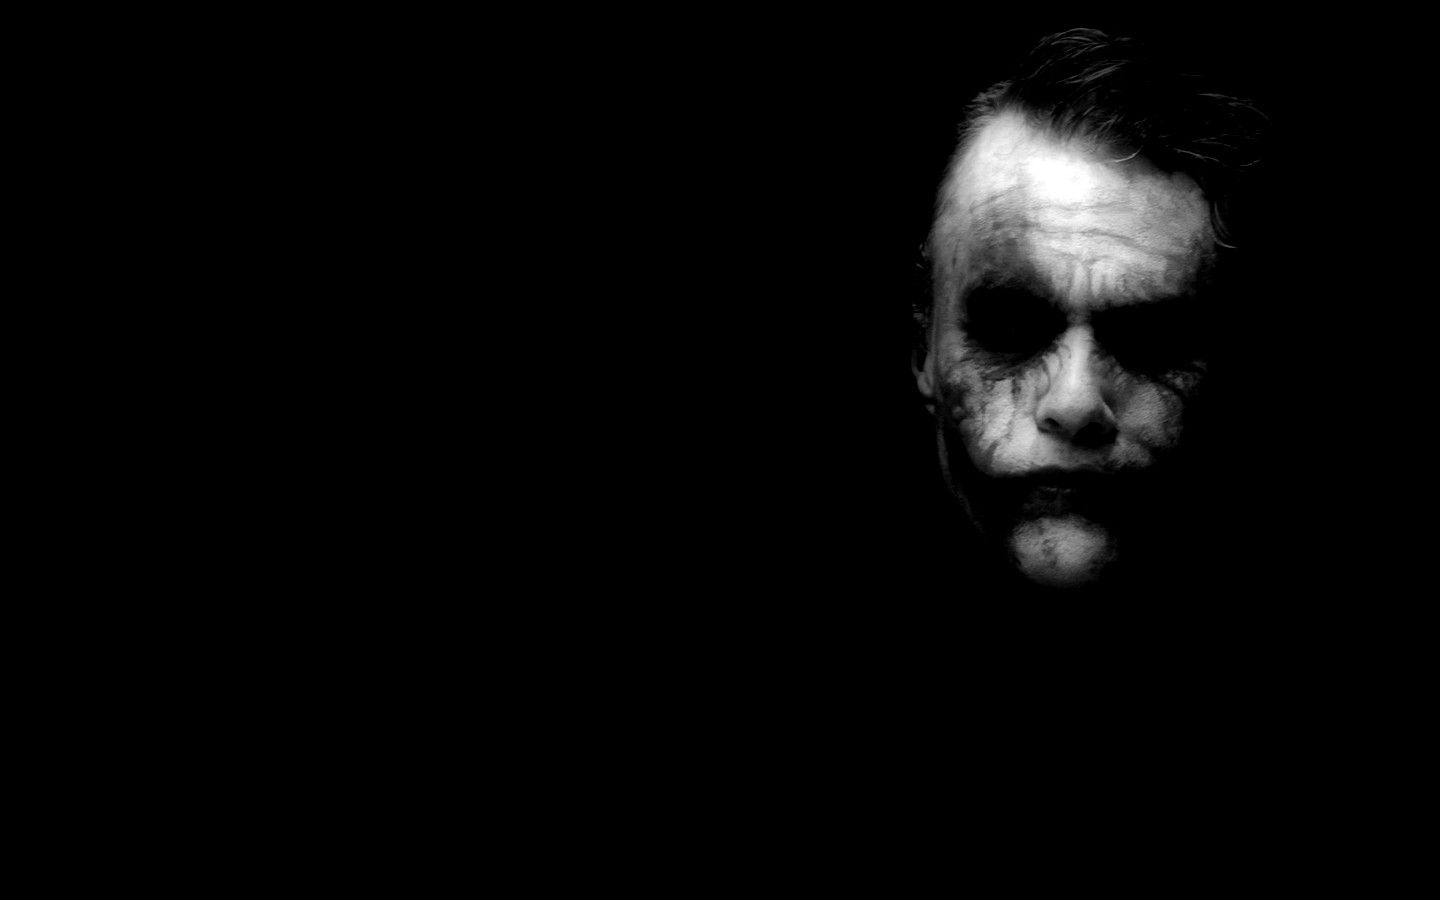 Movies heath ledger joker white the dark knight dark black batman wallpaper